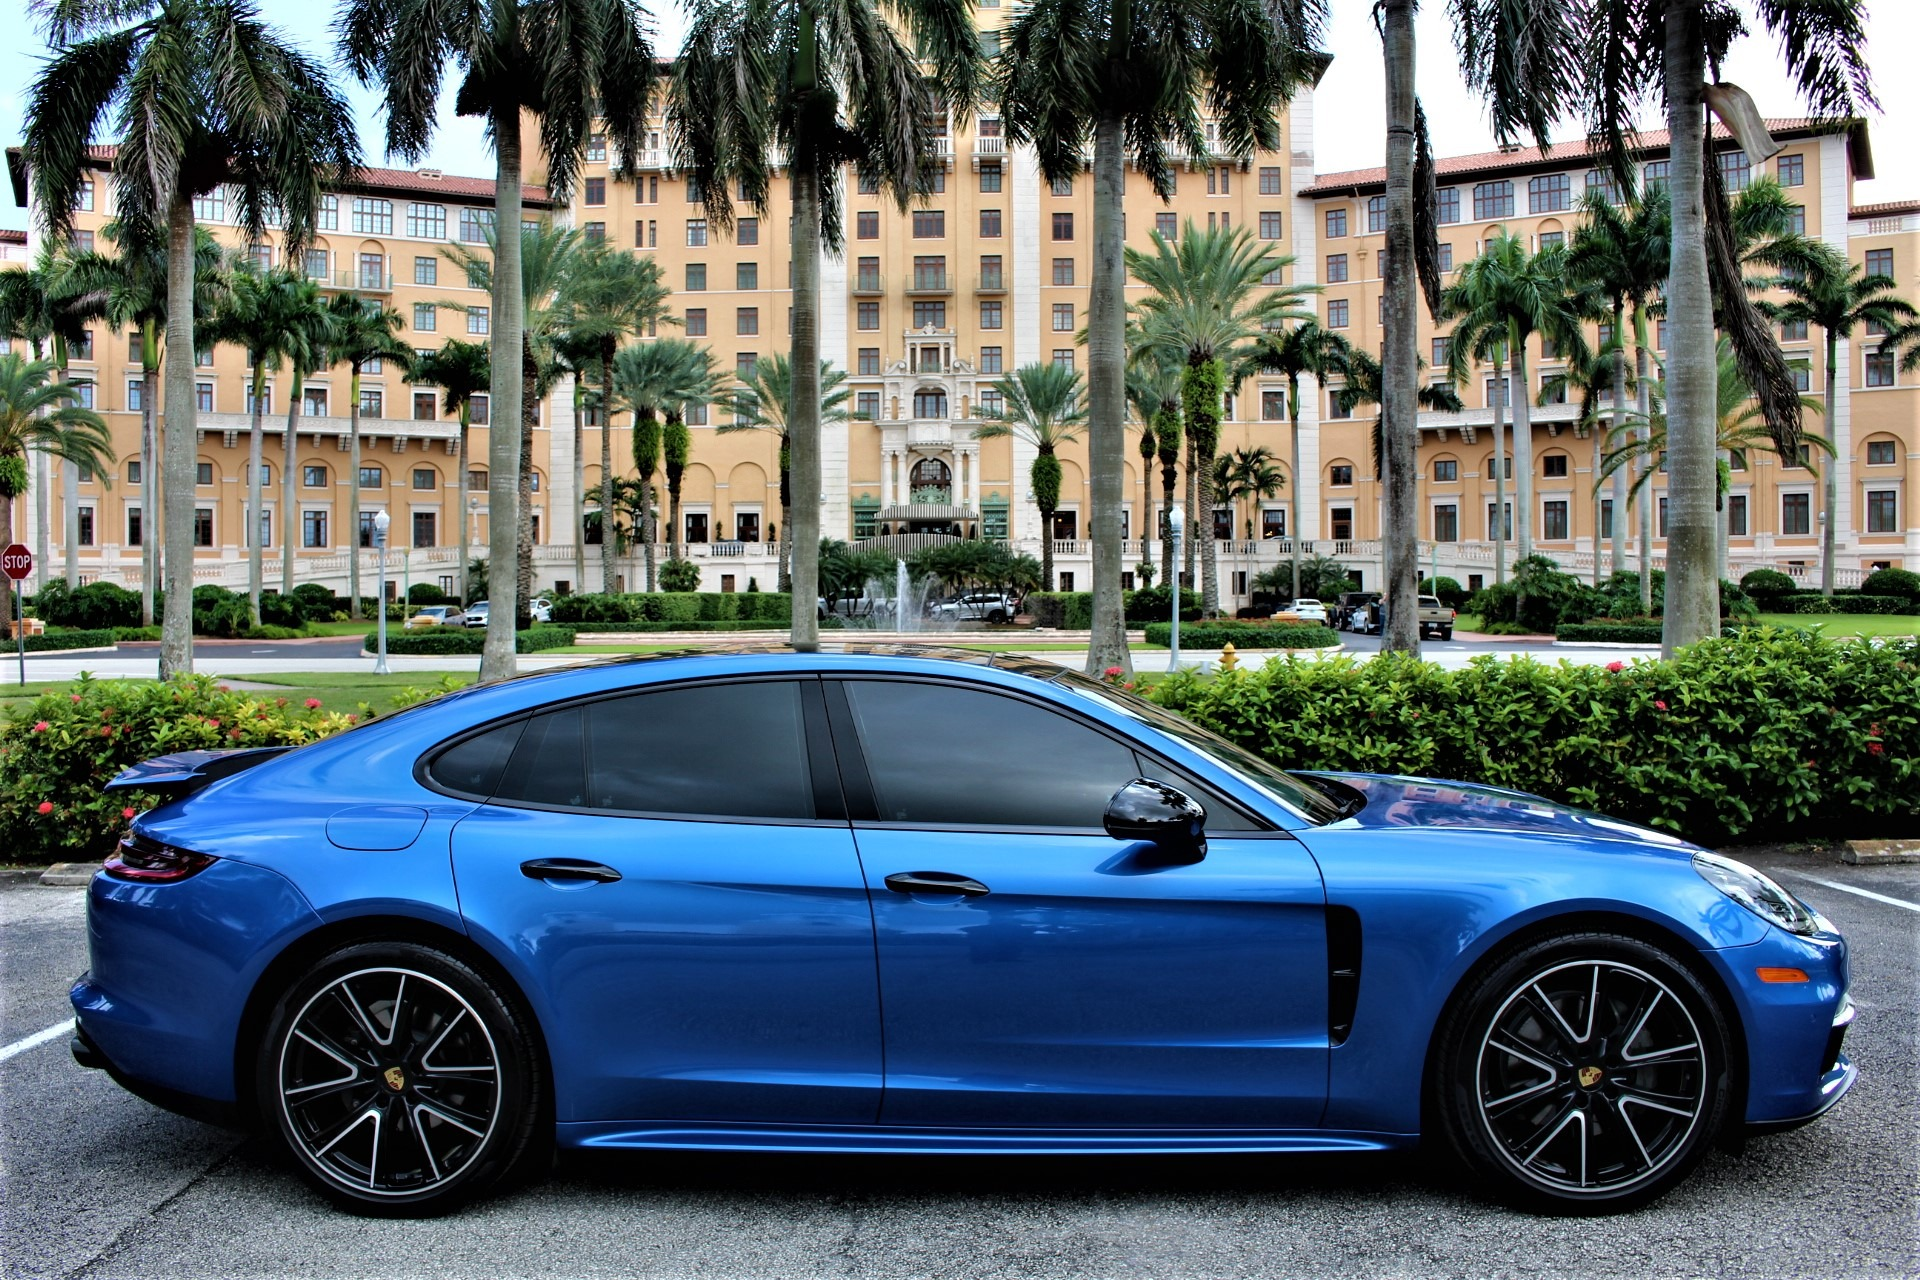 Used 2018 Porsche Panamera 4S For Sale ($83,850) | The Gables Sports Cars Stock #132959